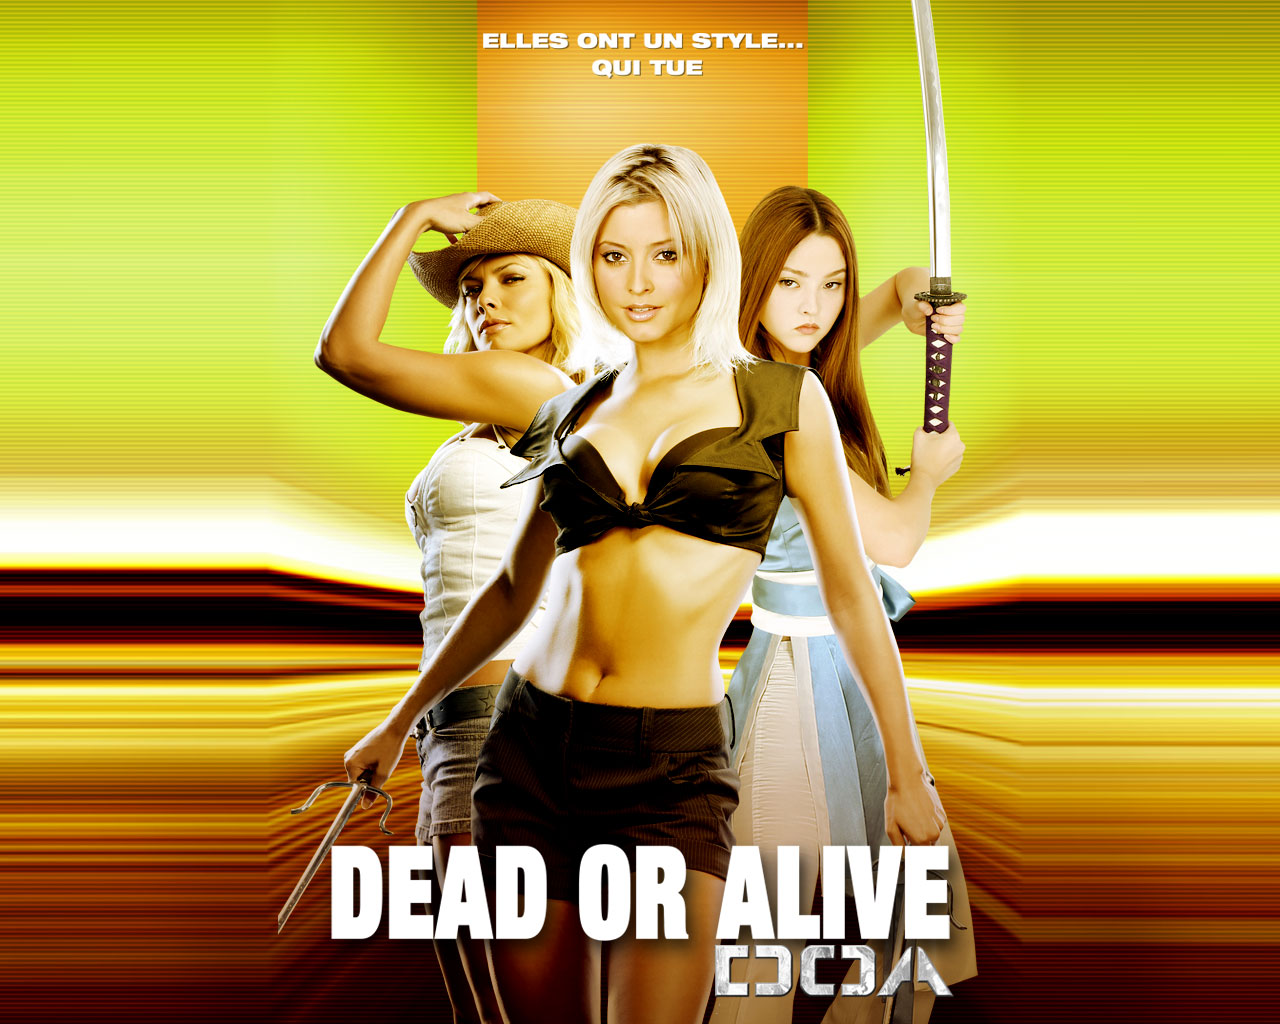 2015 By Stephen Comments Off on Dead or Alive Movie Wallpaper 1280x1024